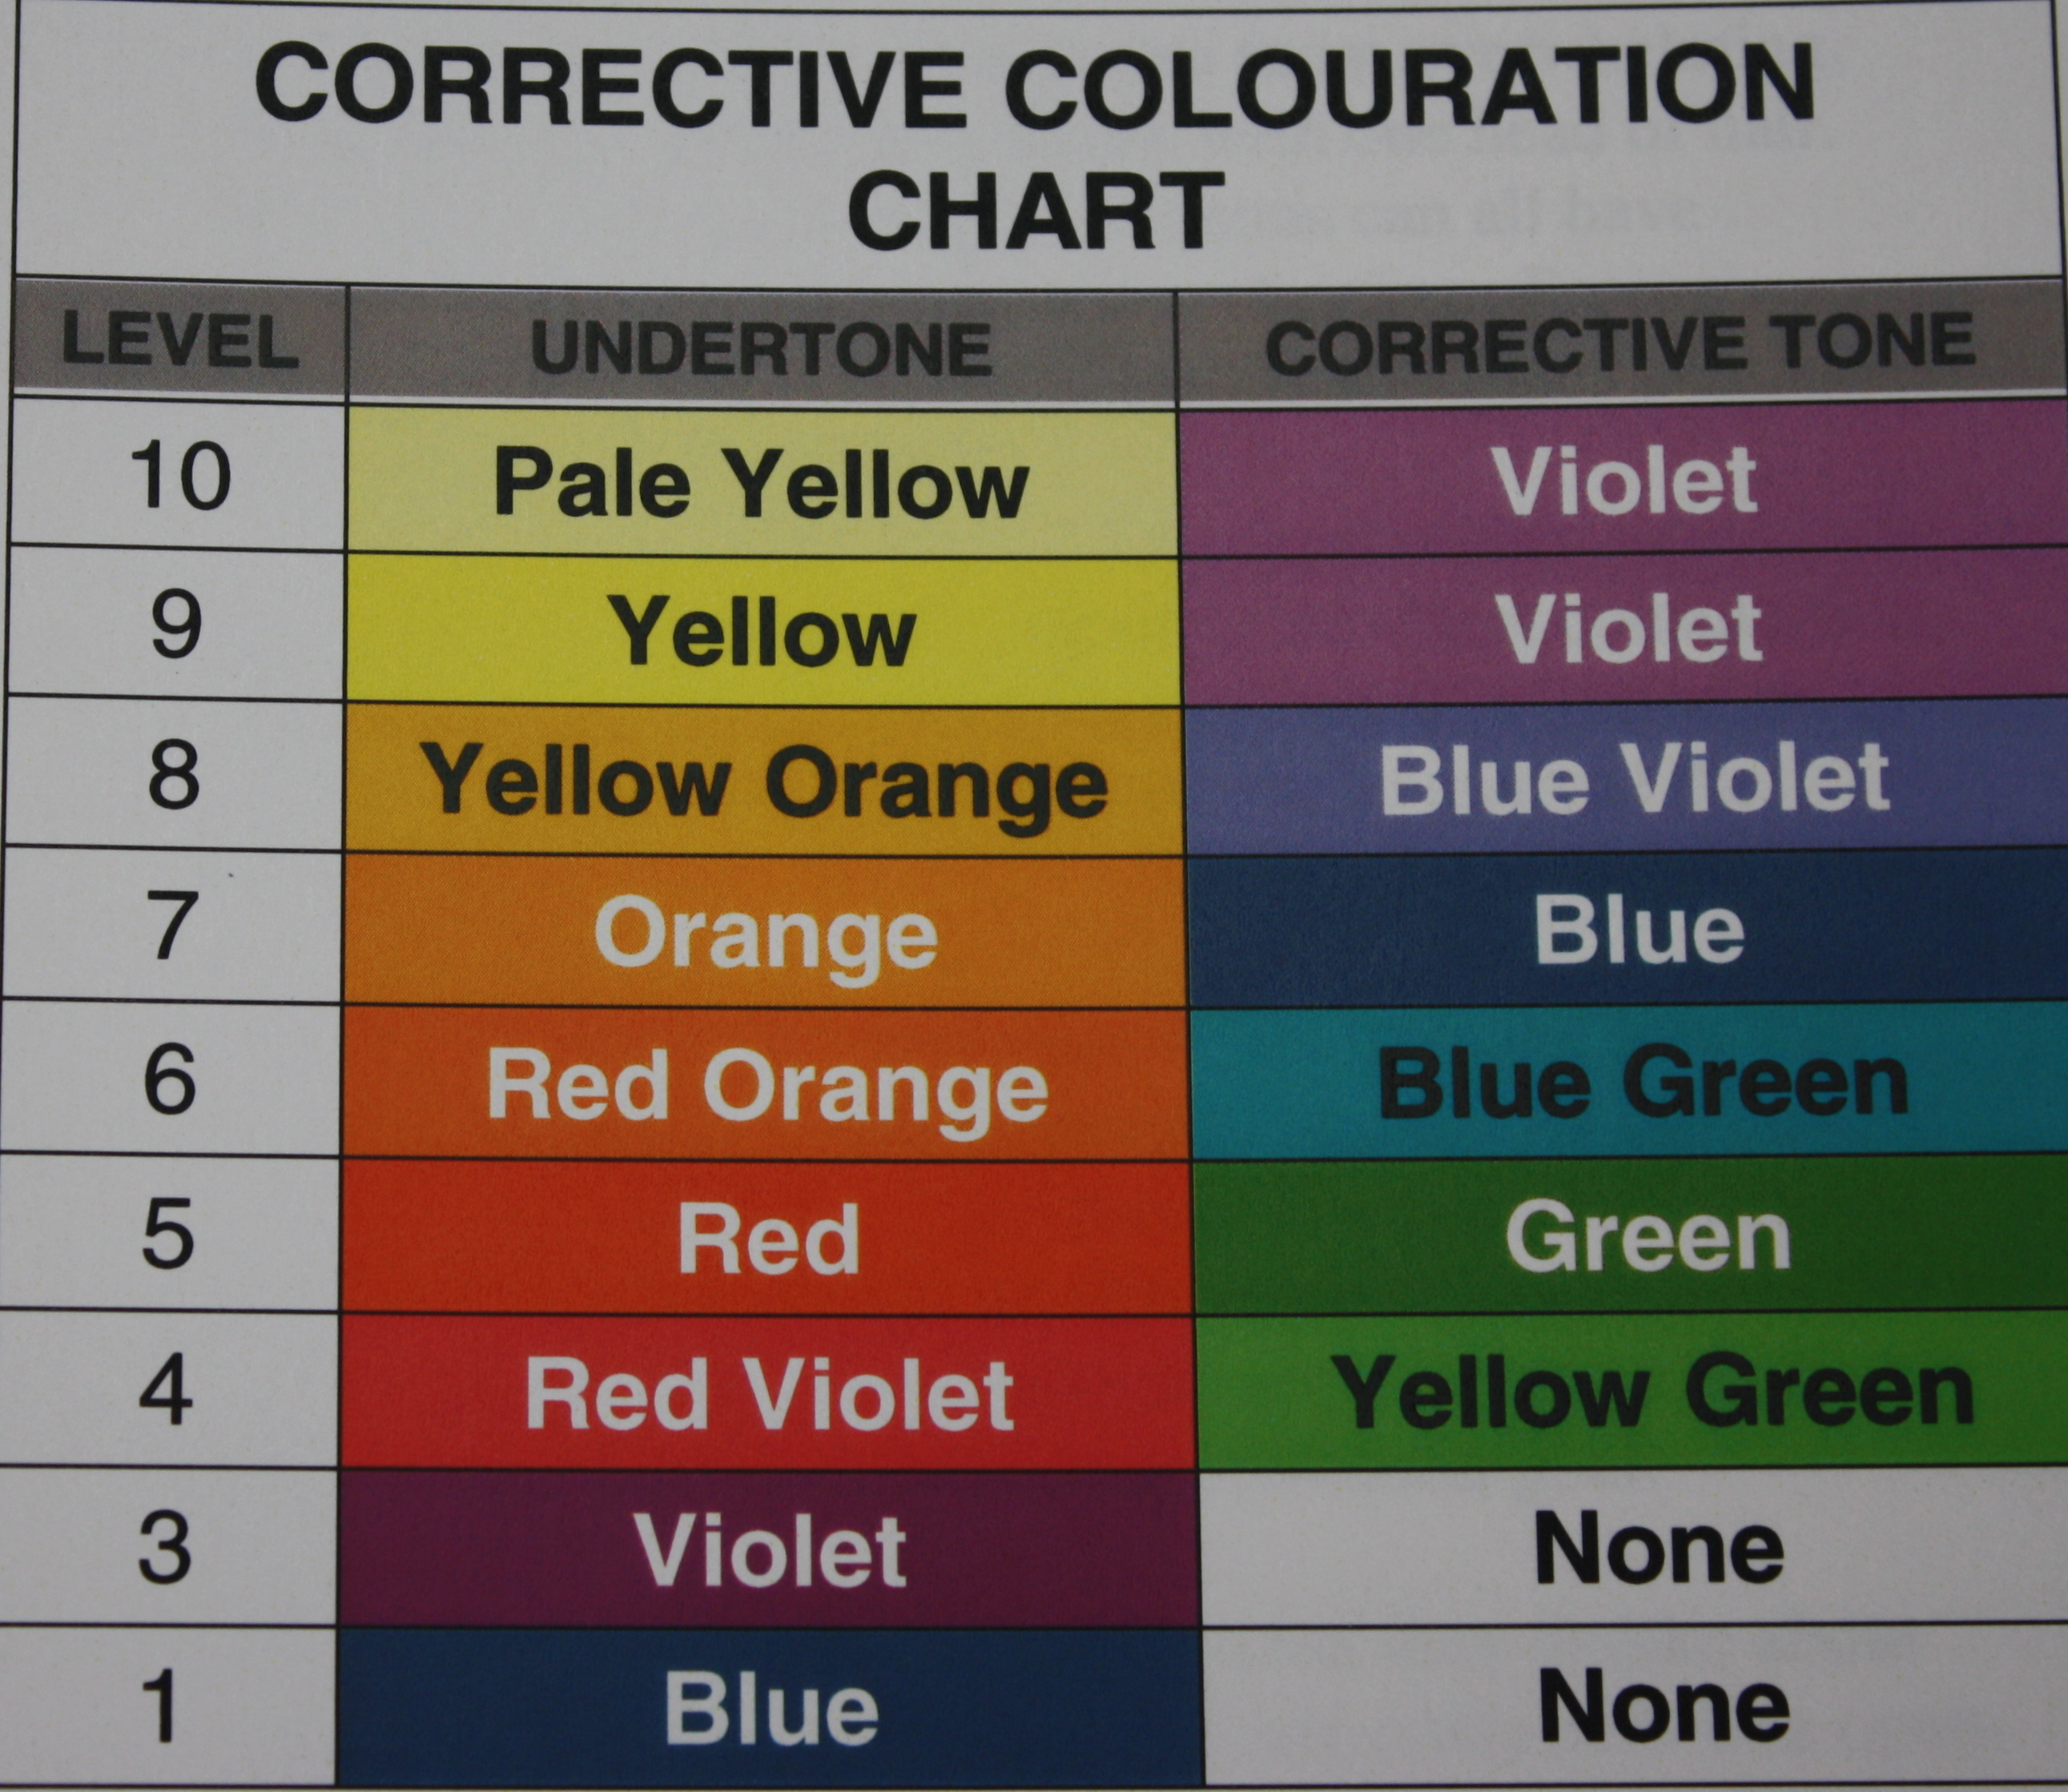 Corrective hair colour charts back2myroots page 2 level geenschuldenfo Images